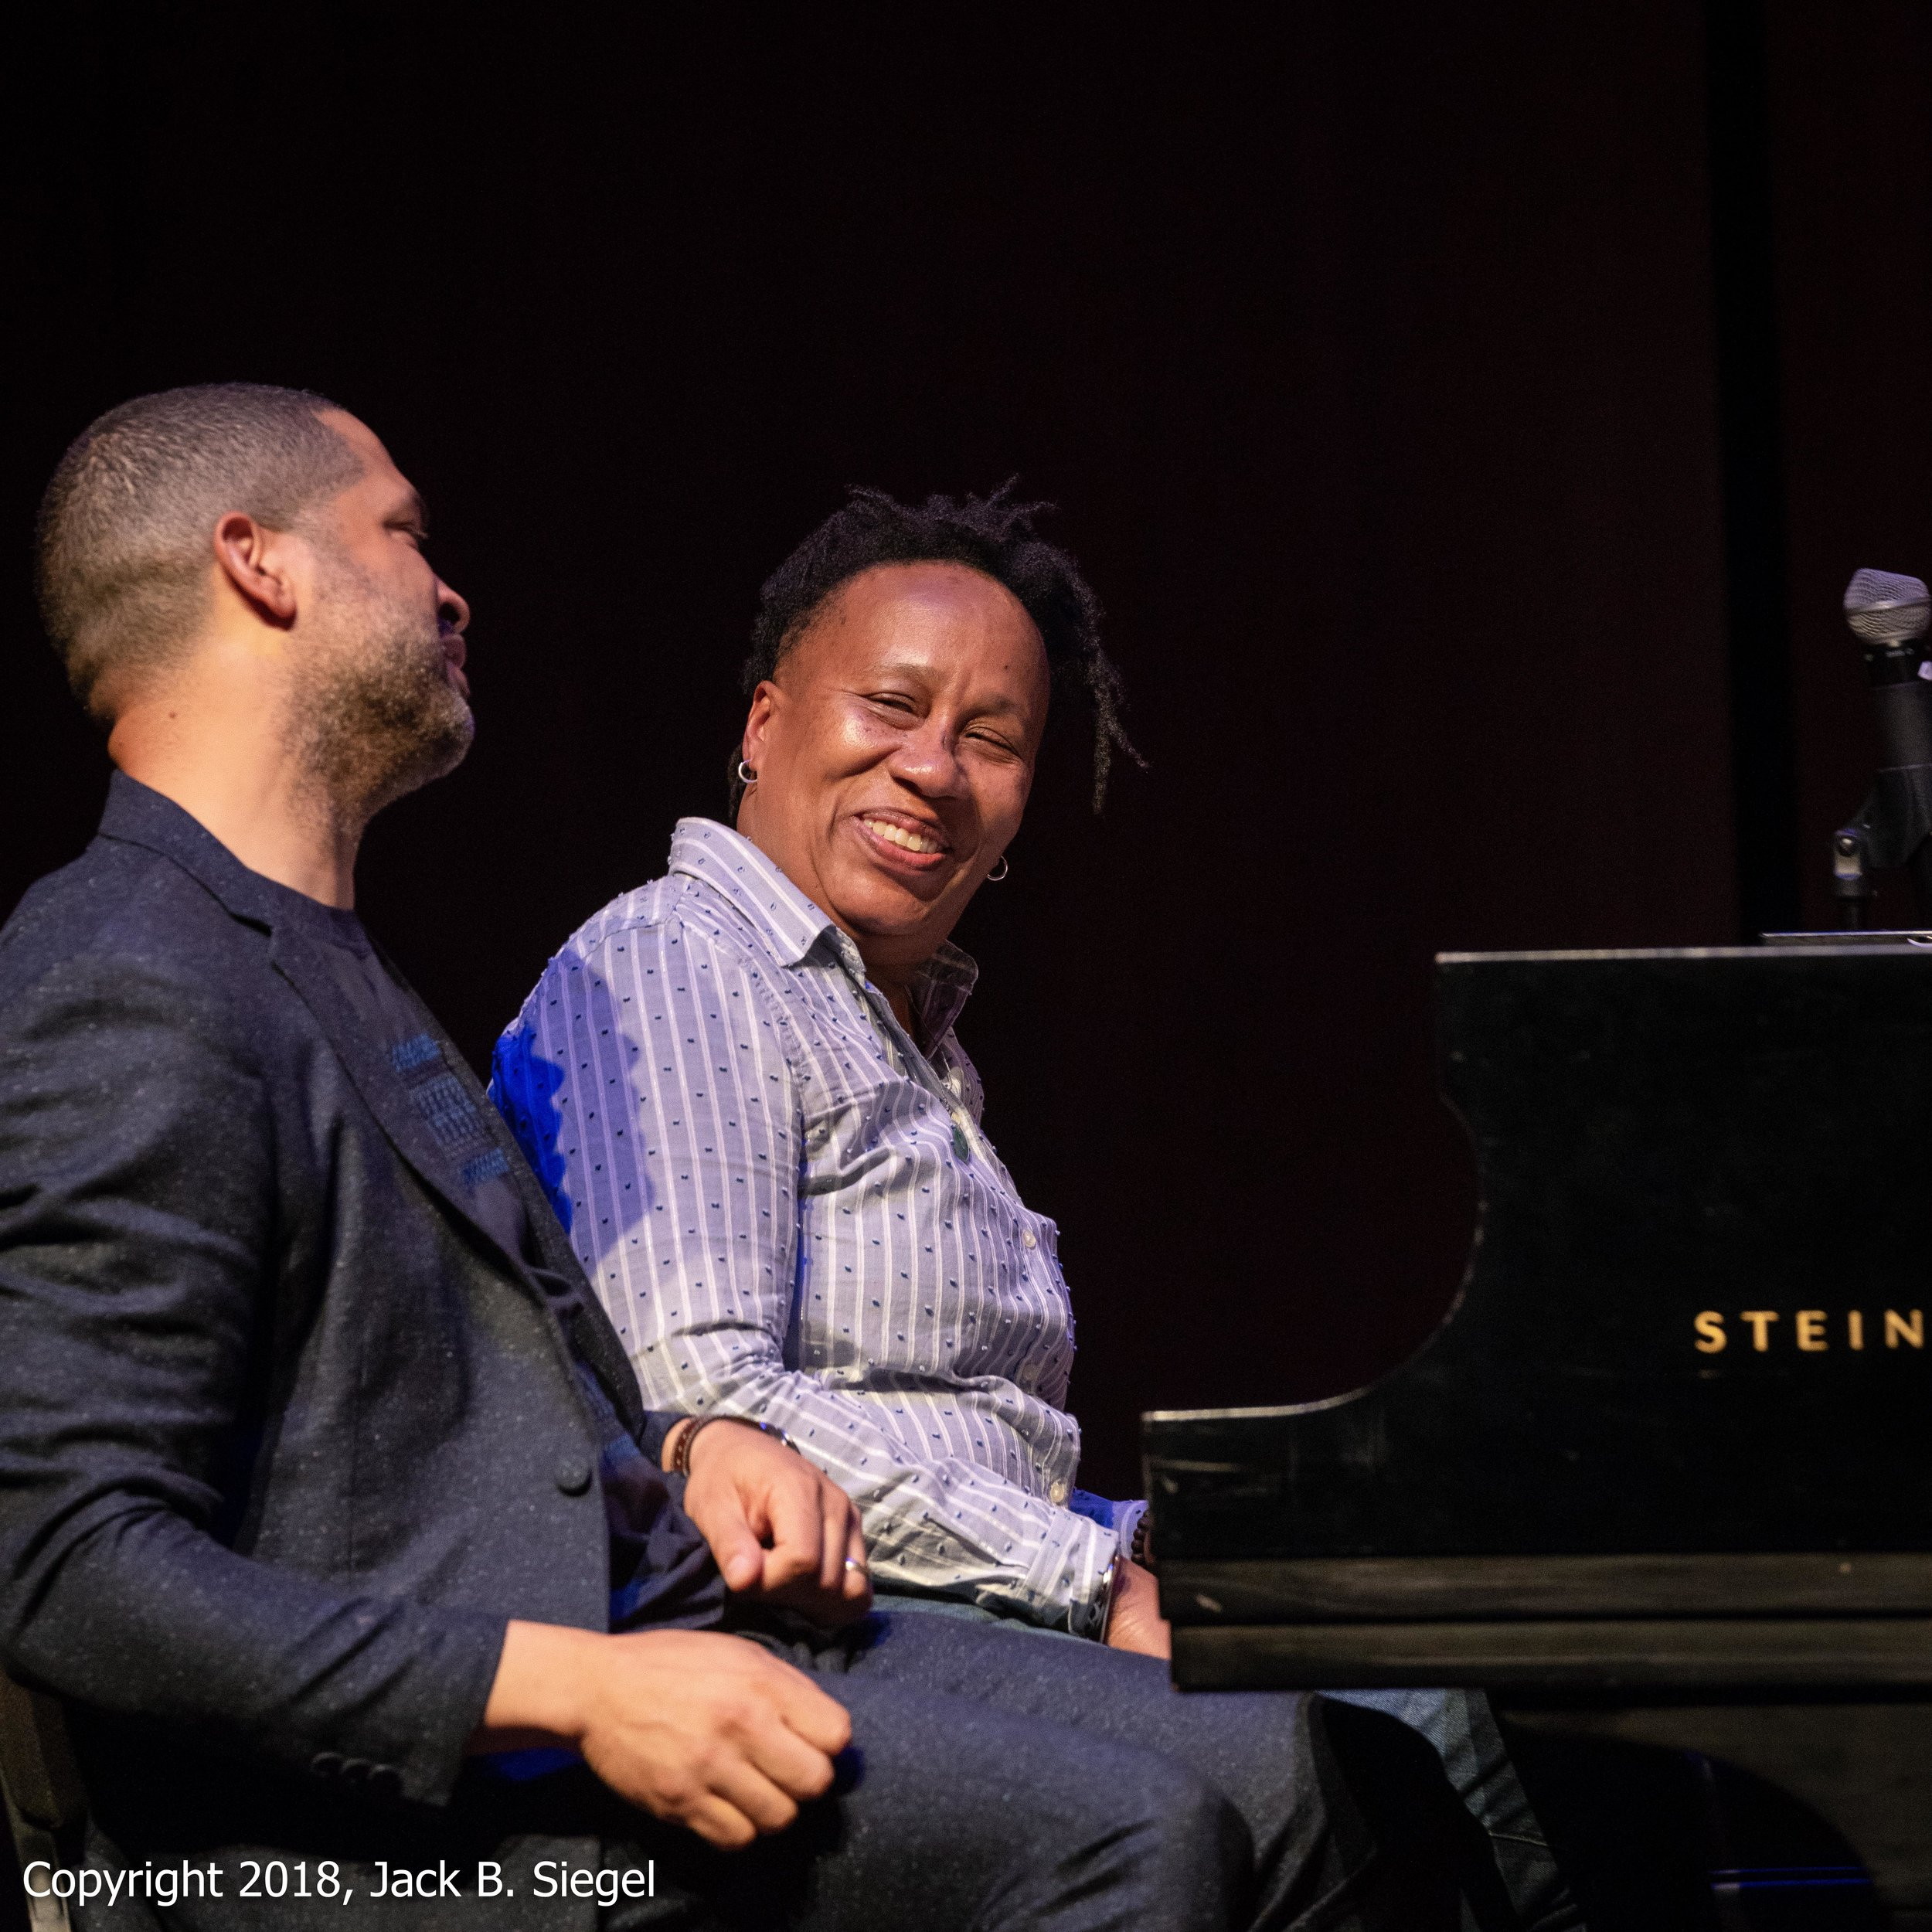 _DS17231_Copyright 2018 jpeg_Jason Moran and Bethany Pickens.jpg